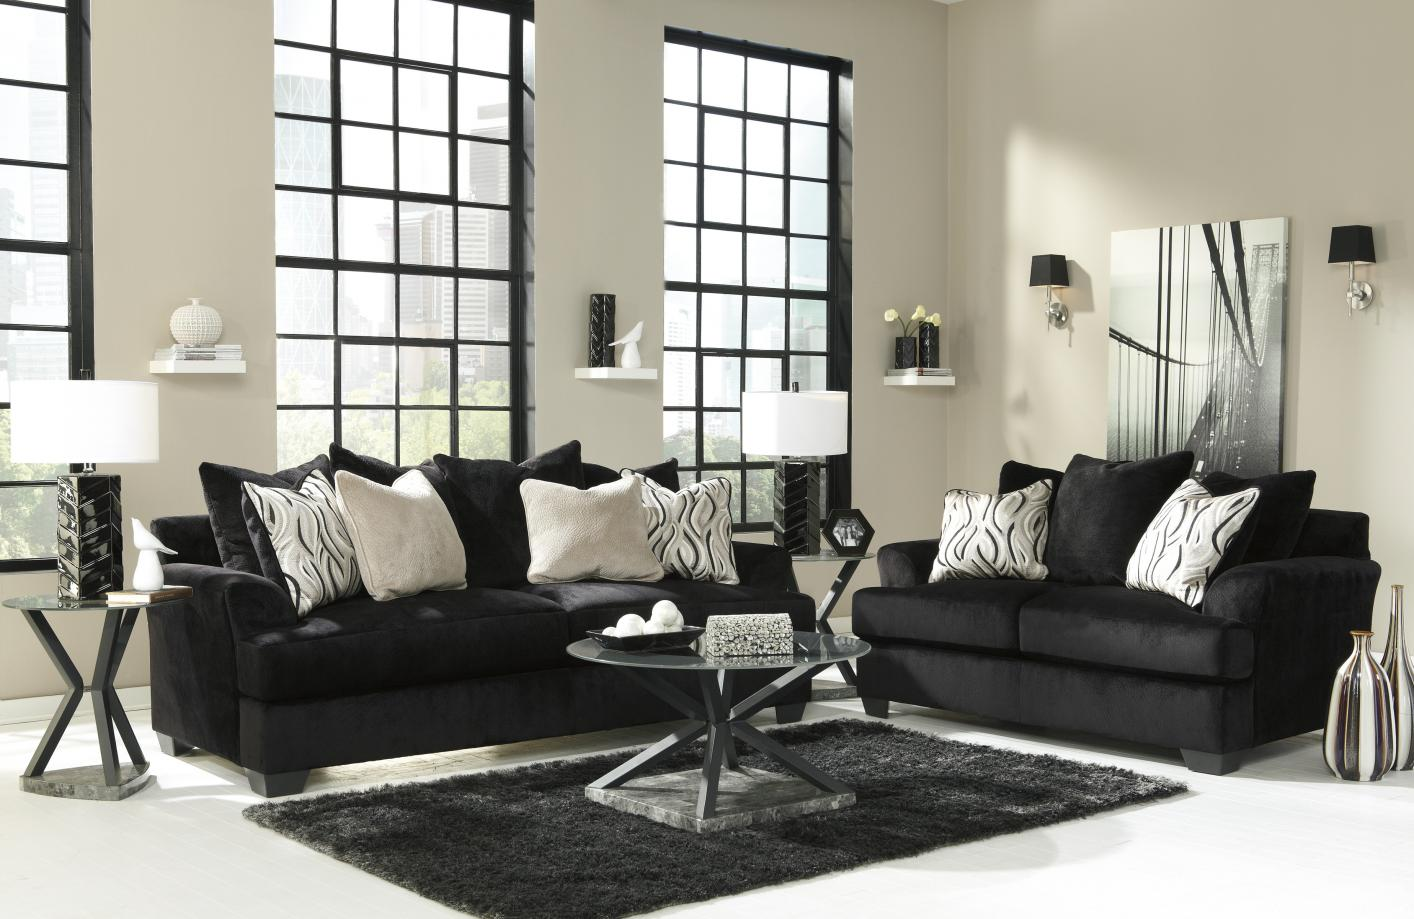 Signature Design by Ashley Heflin 4720038 4720035 Black  : heflin black fabric sofa and loveseat set 75 from www.stealasofa.com size 1414 x 919 jpeg 151kB